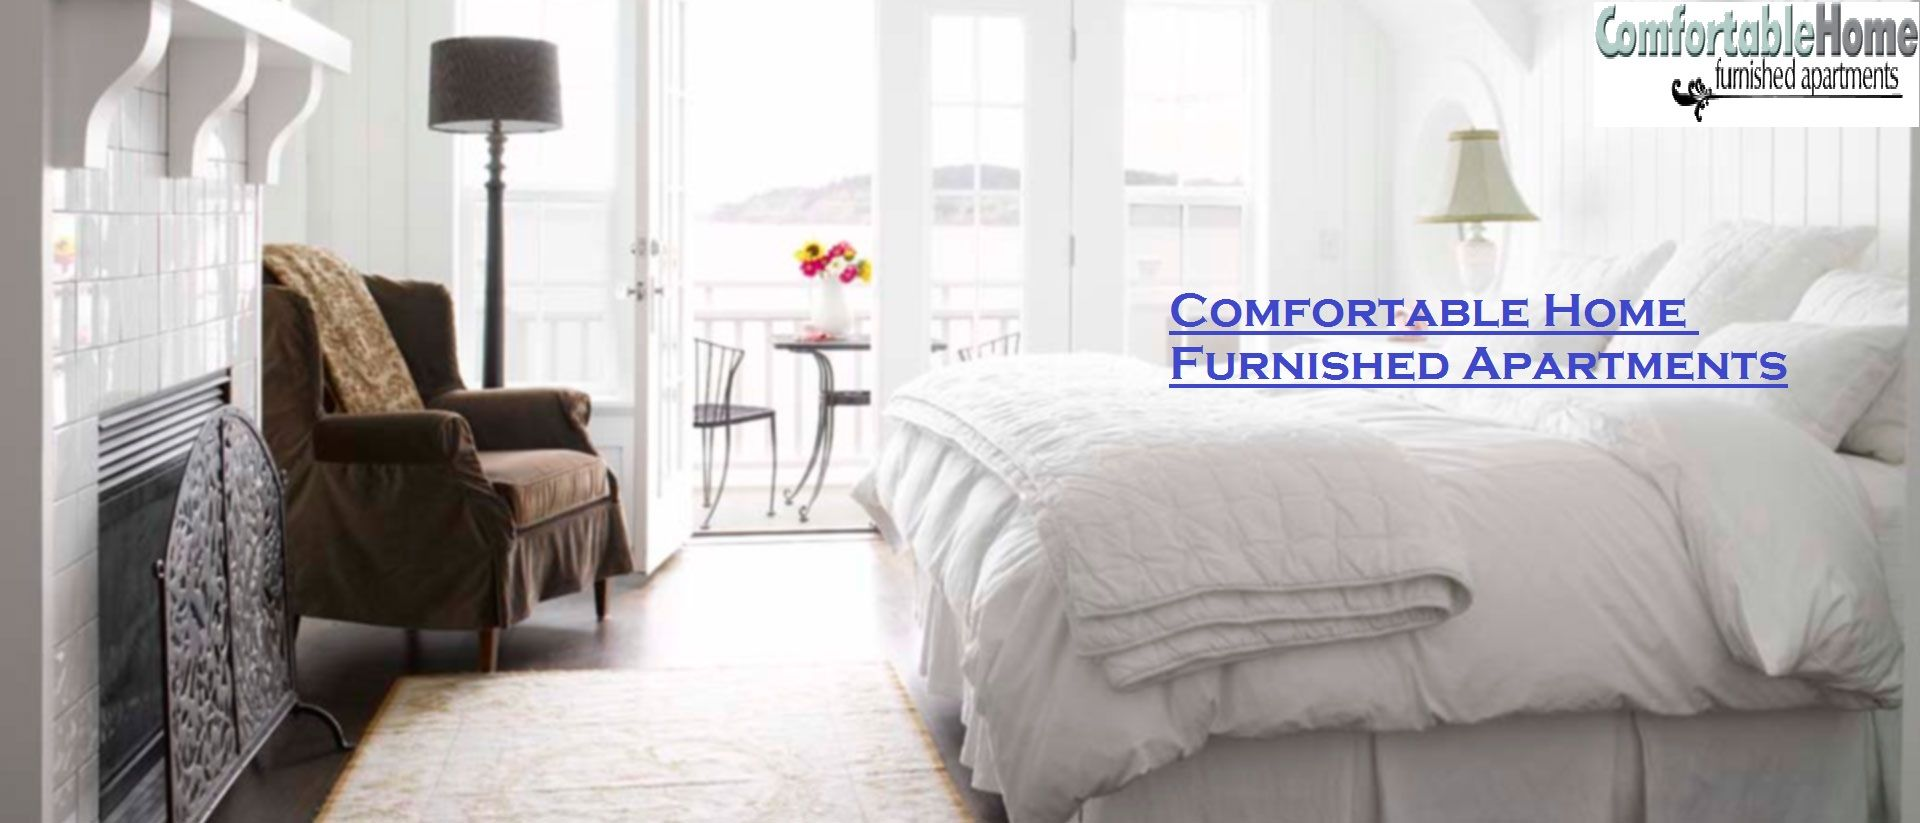 Comfortable Home Furnished Apartments is one of the 1